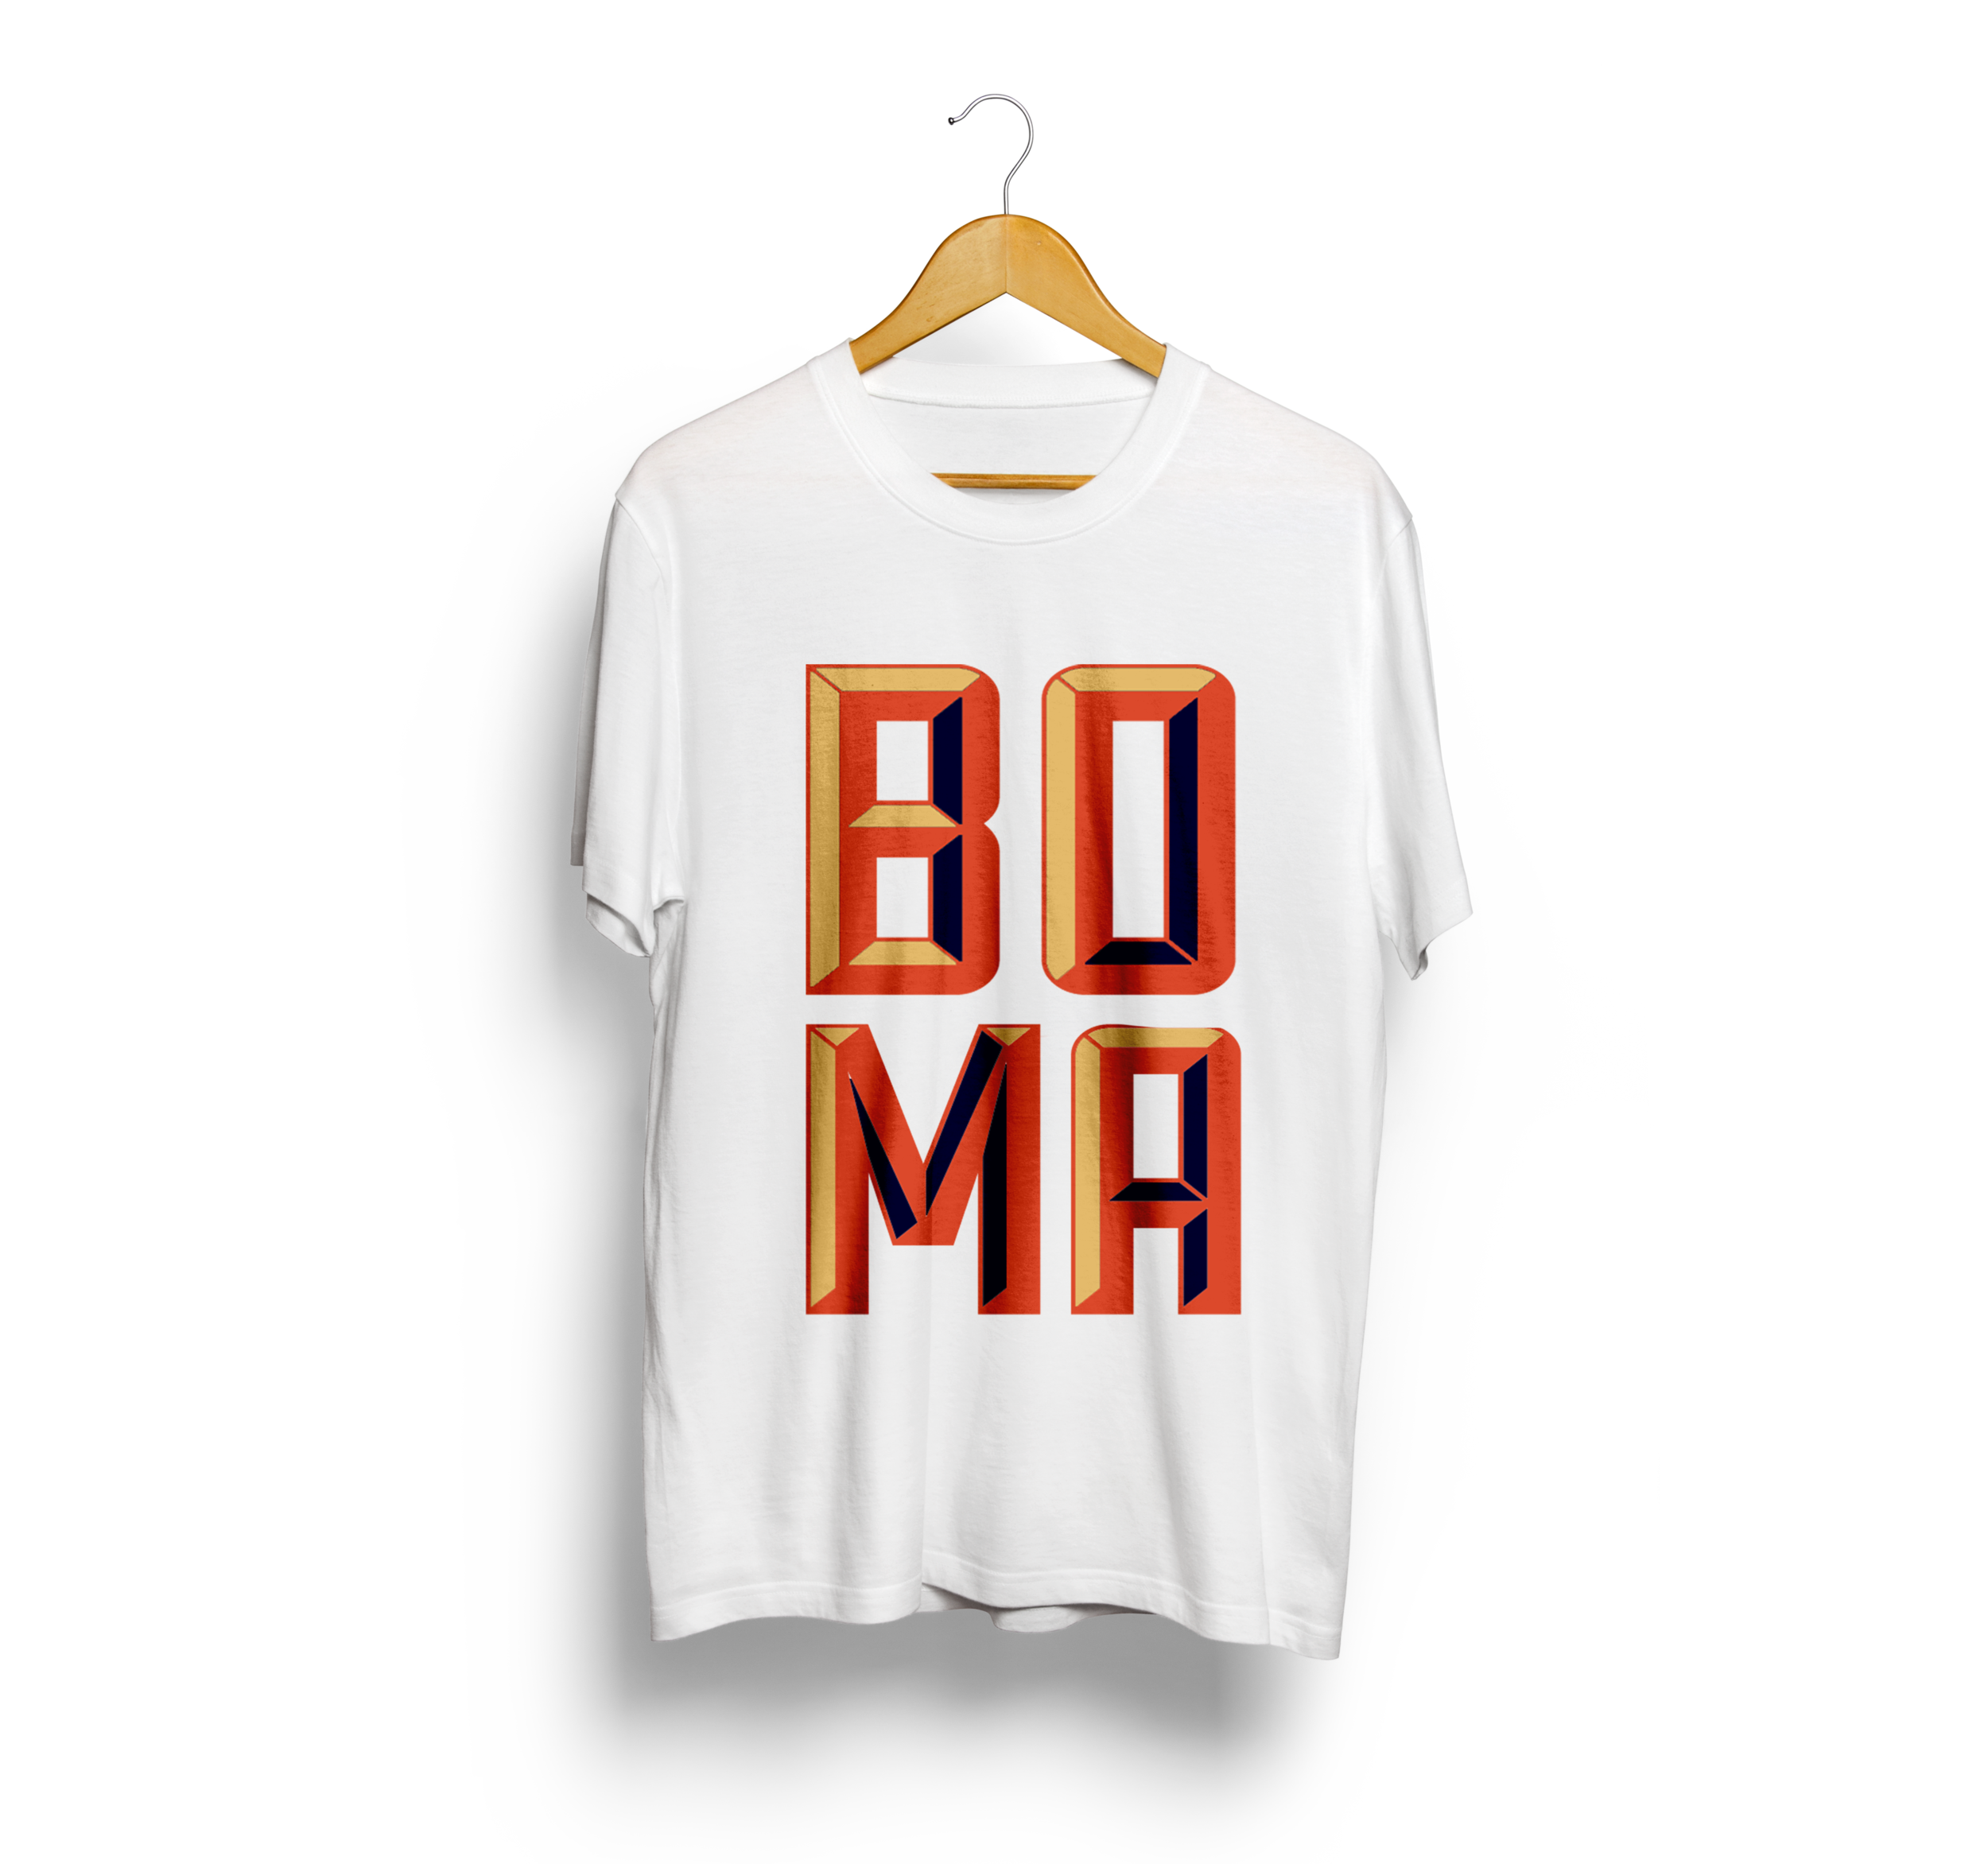 BM TSHIRT 2 TRANSPARENT.png